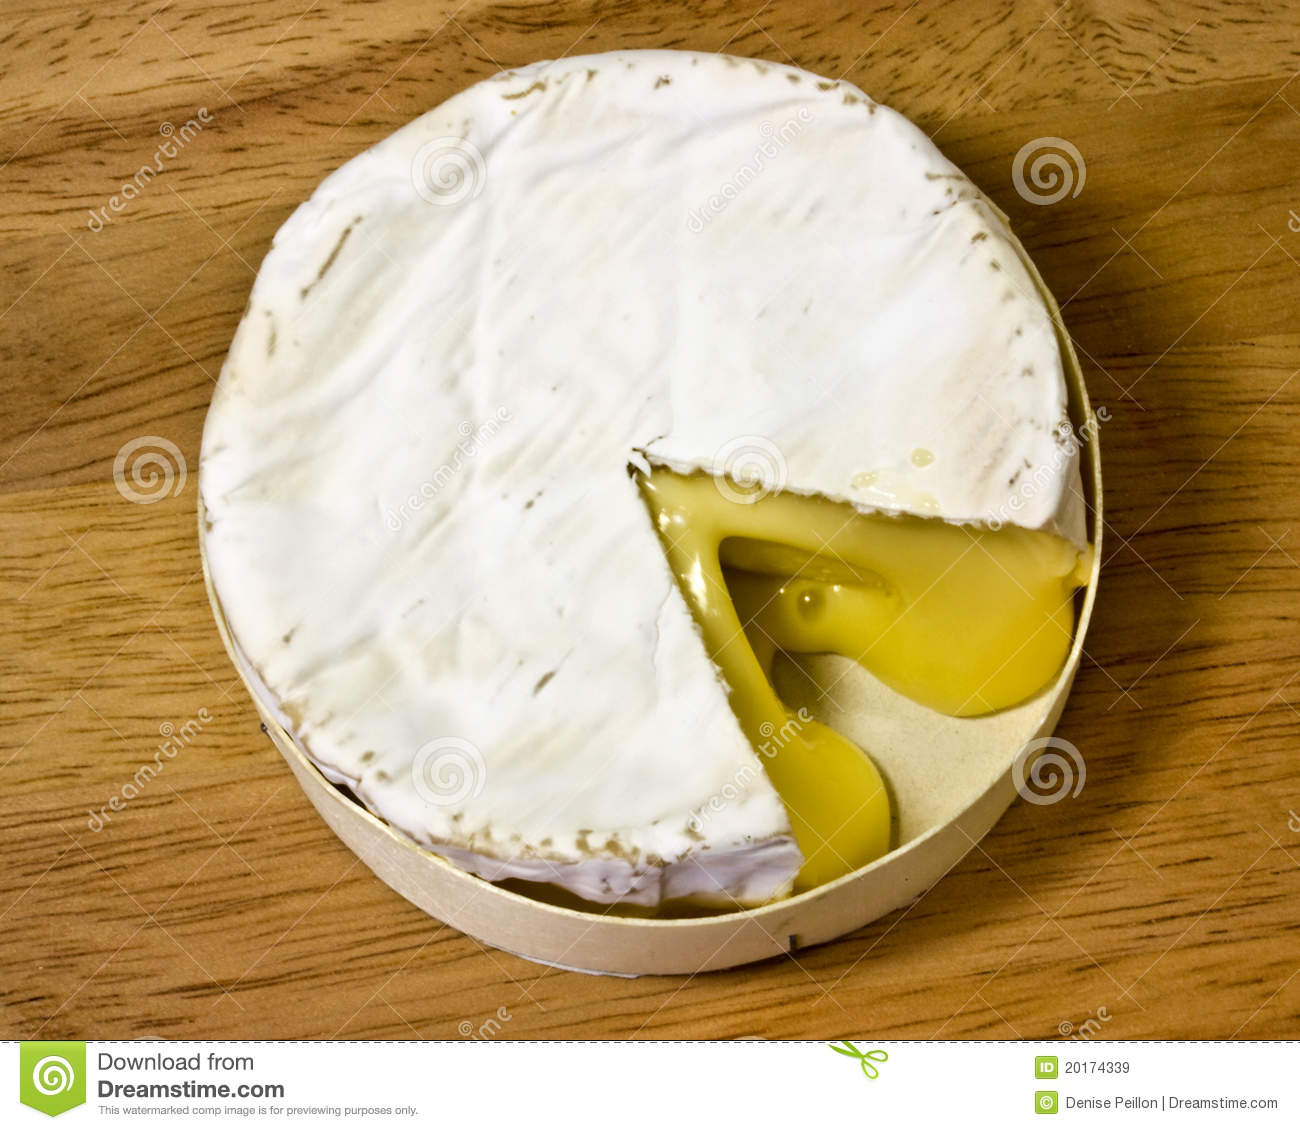 how to eat camembert rind